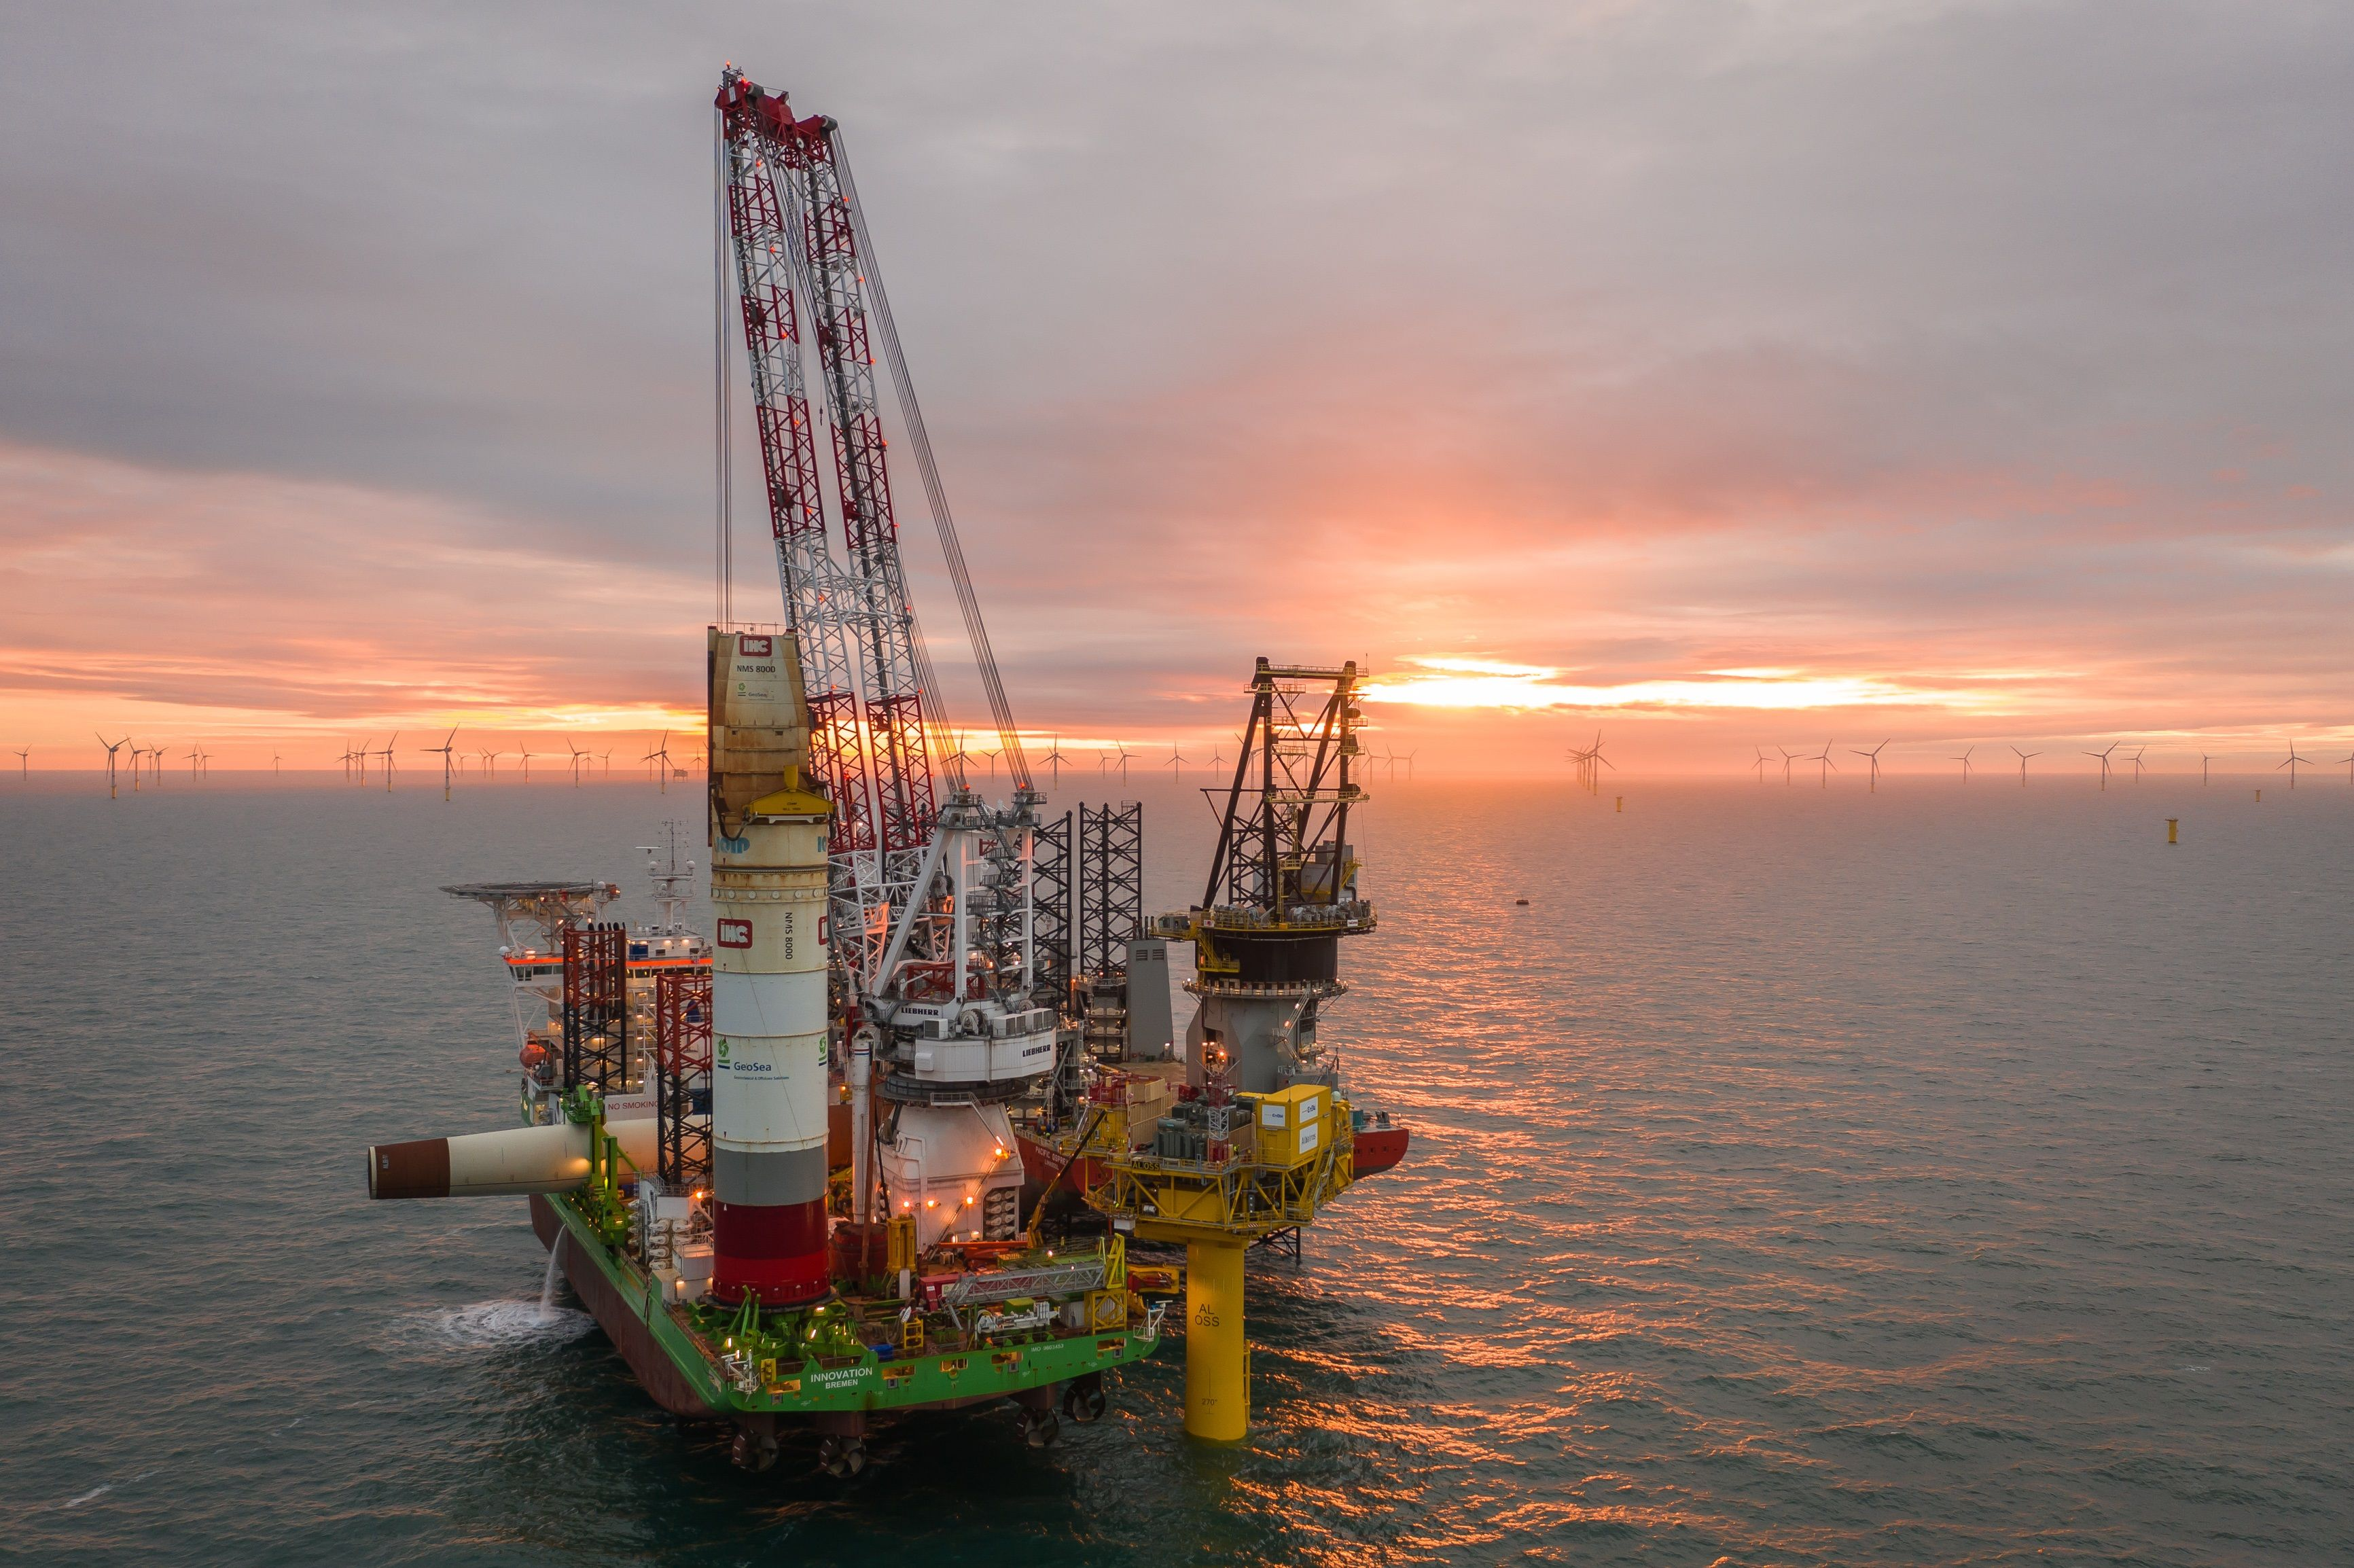 Powering offshore oil and gas production platforms with renewables makes sense.